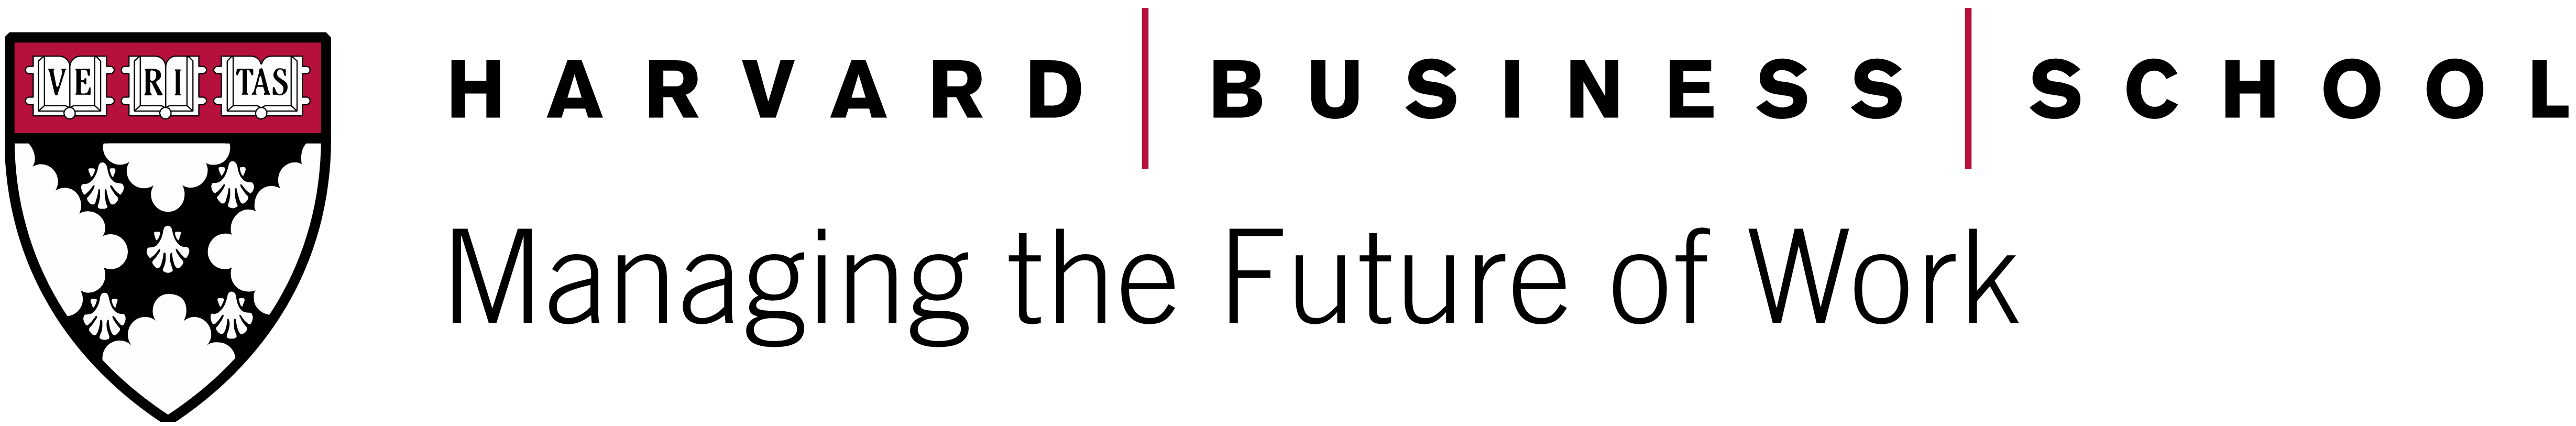 Harvard Business School Managing the Future of Work Project Logo